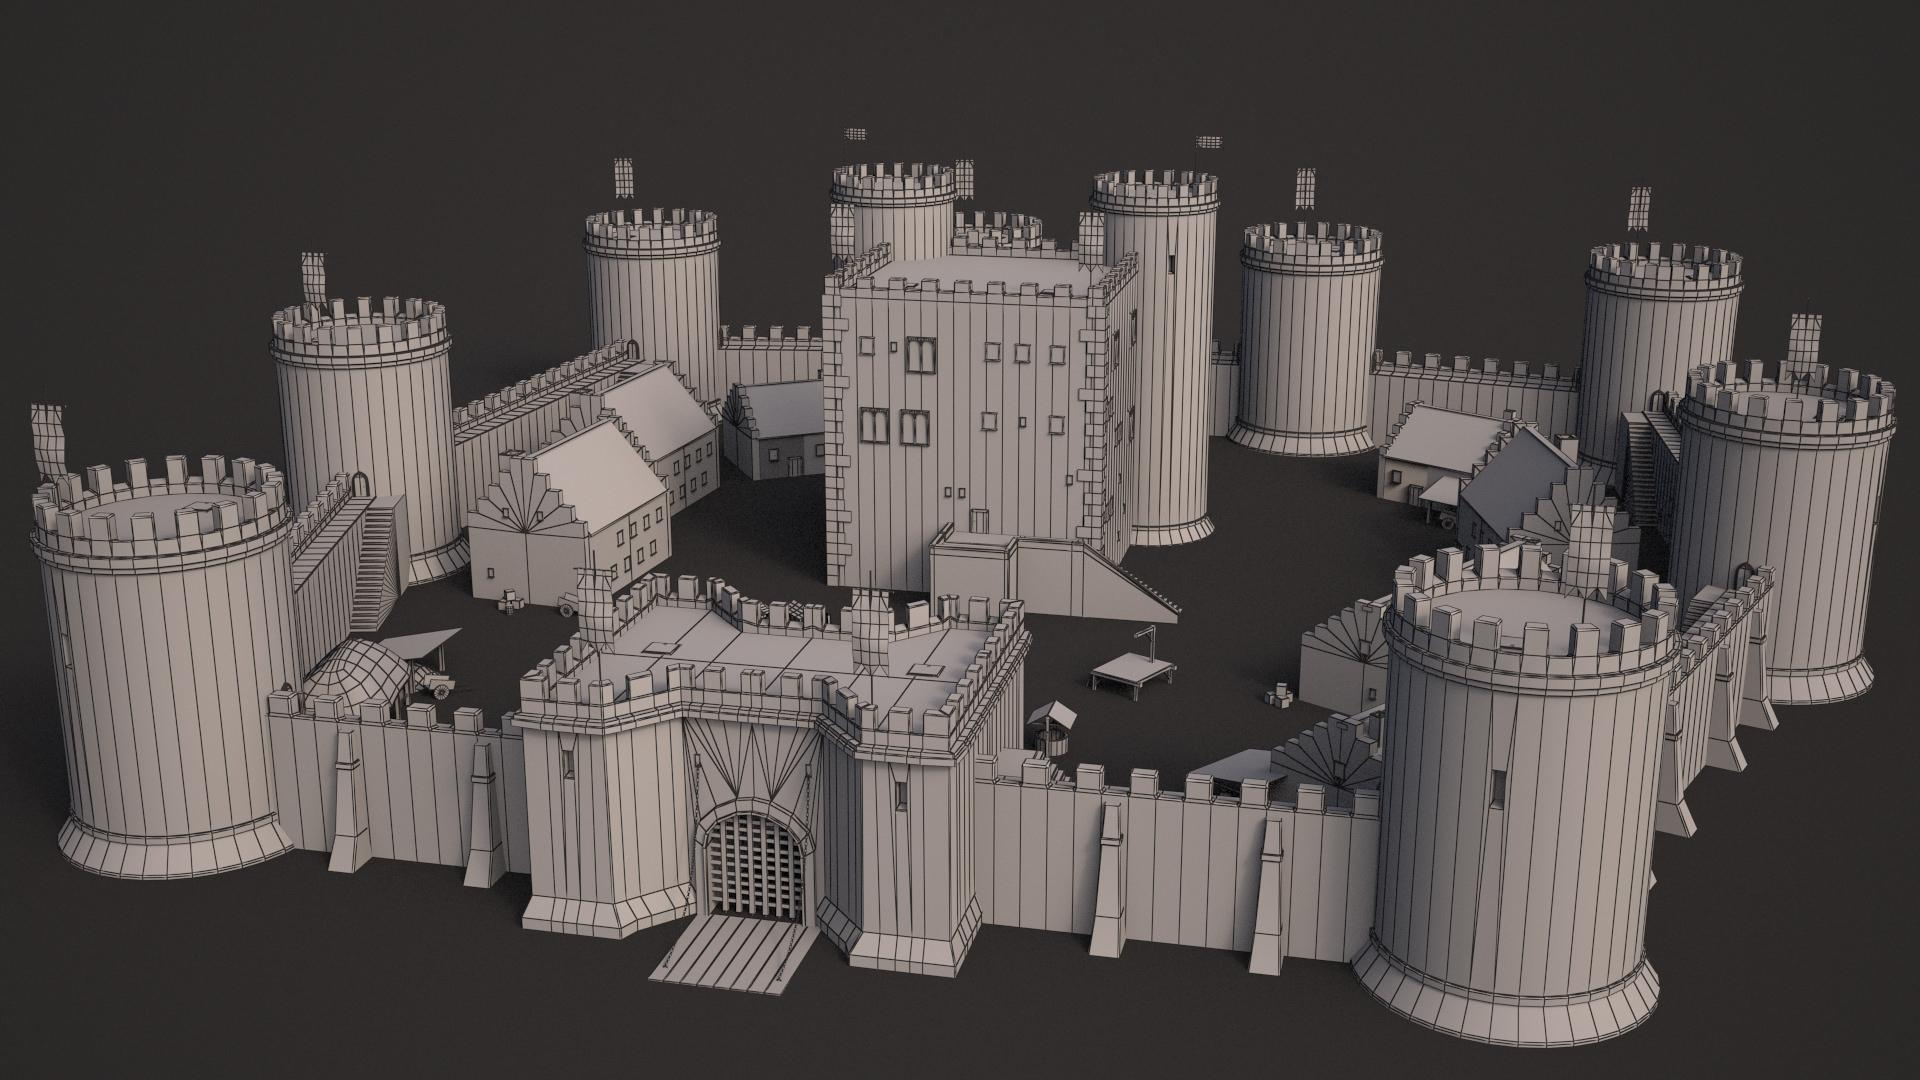 meideval_castle_set_3d_model_3ds_fbx_obj_max_bb63cdc5-1bff-4baa-a3e6-954c8a93865b.jpg